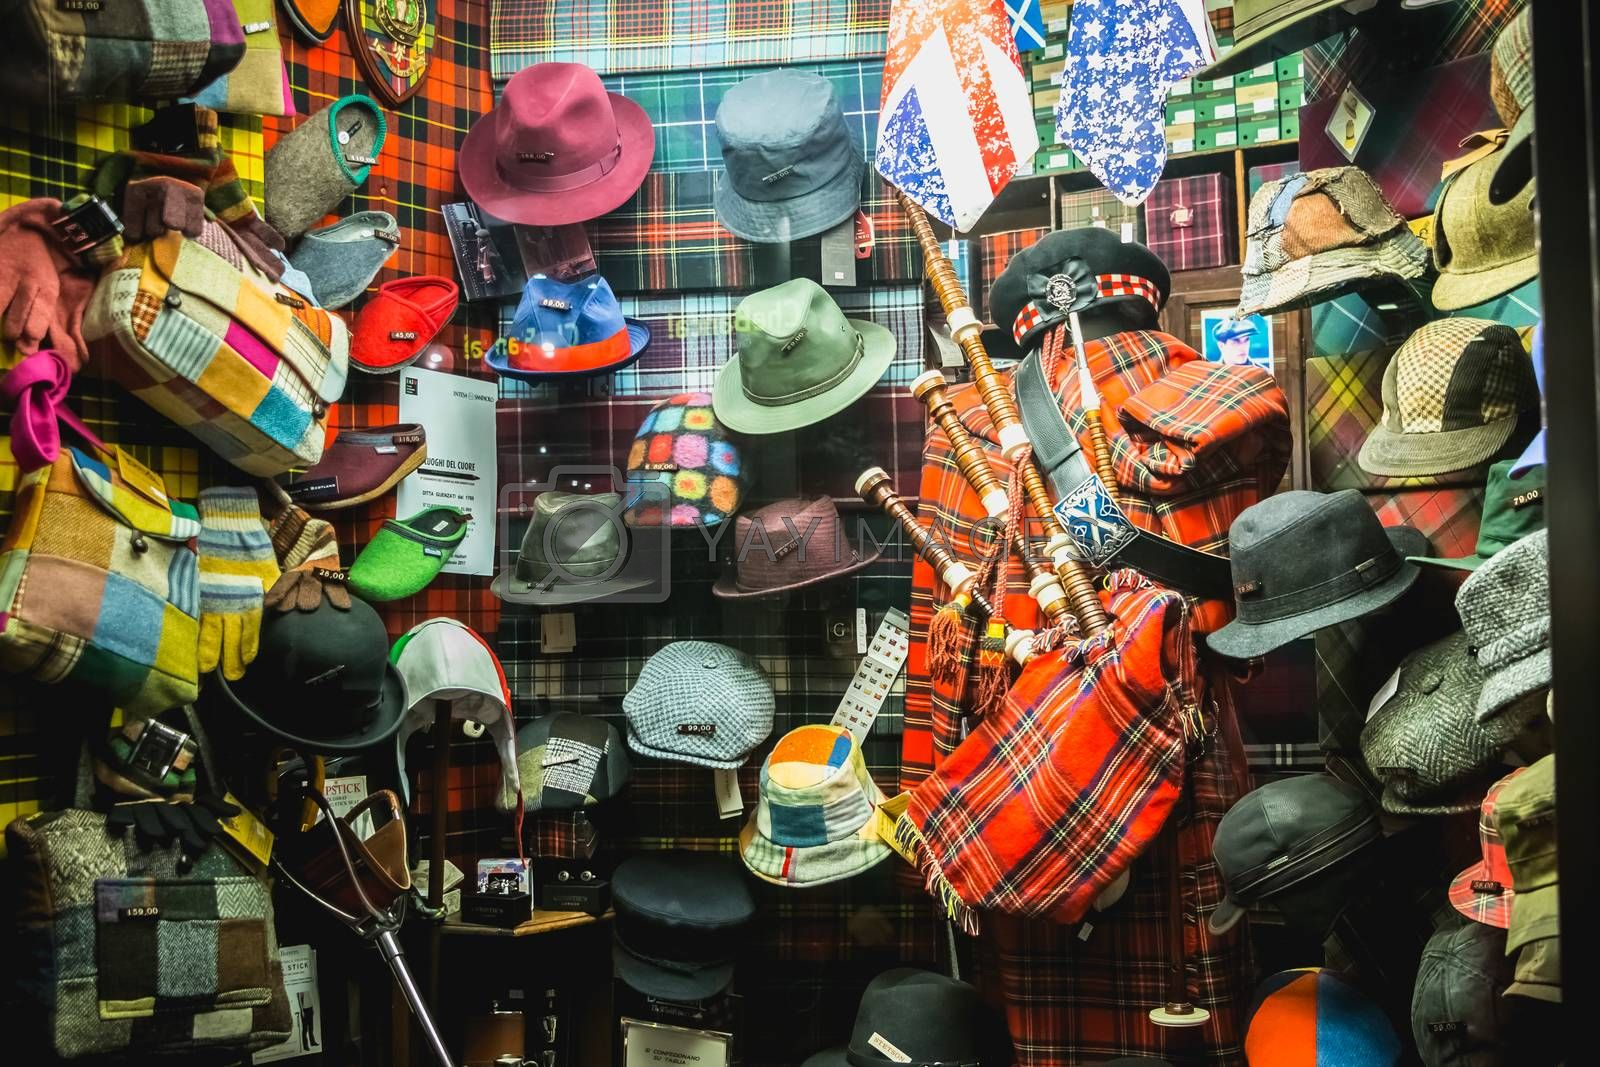 Milan, Italy - November 2, 2017: Showcase of a hat and vintage bag shop in the city center on a fall day